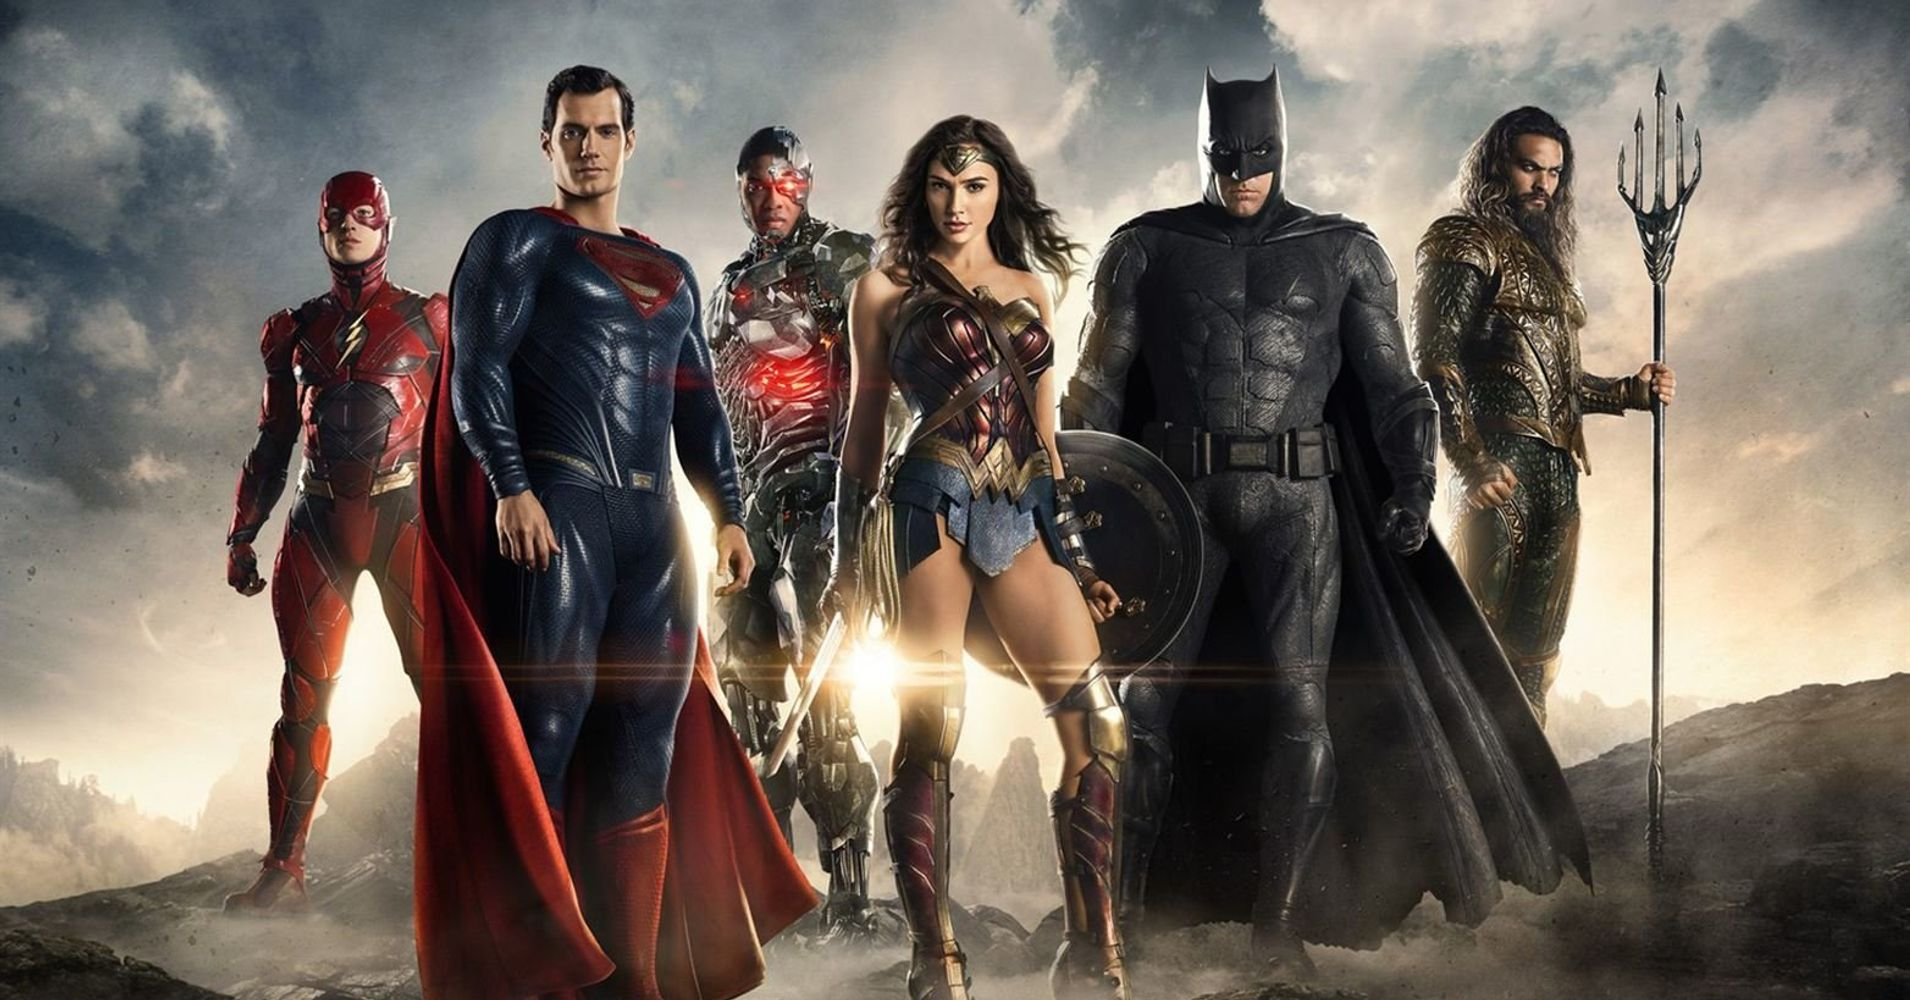 This Video Breaks Down Why DC Films Are Not As Good As Marvel Films